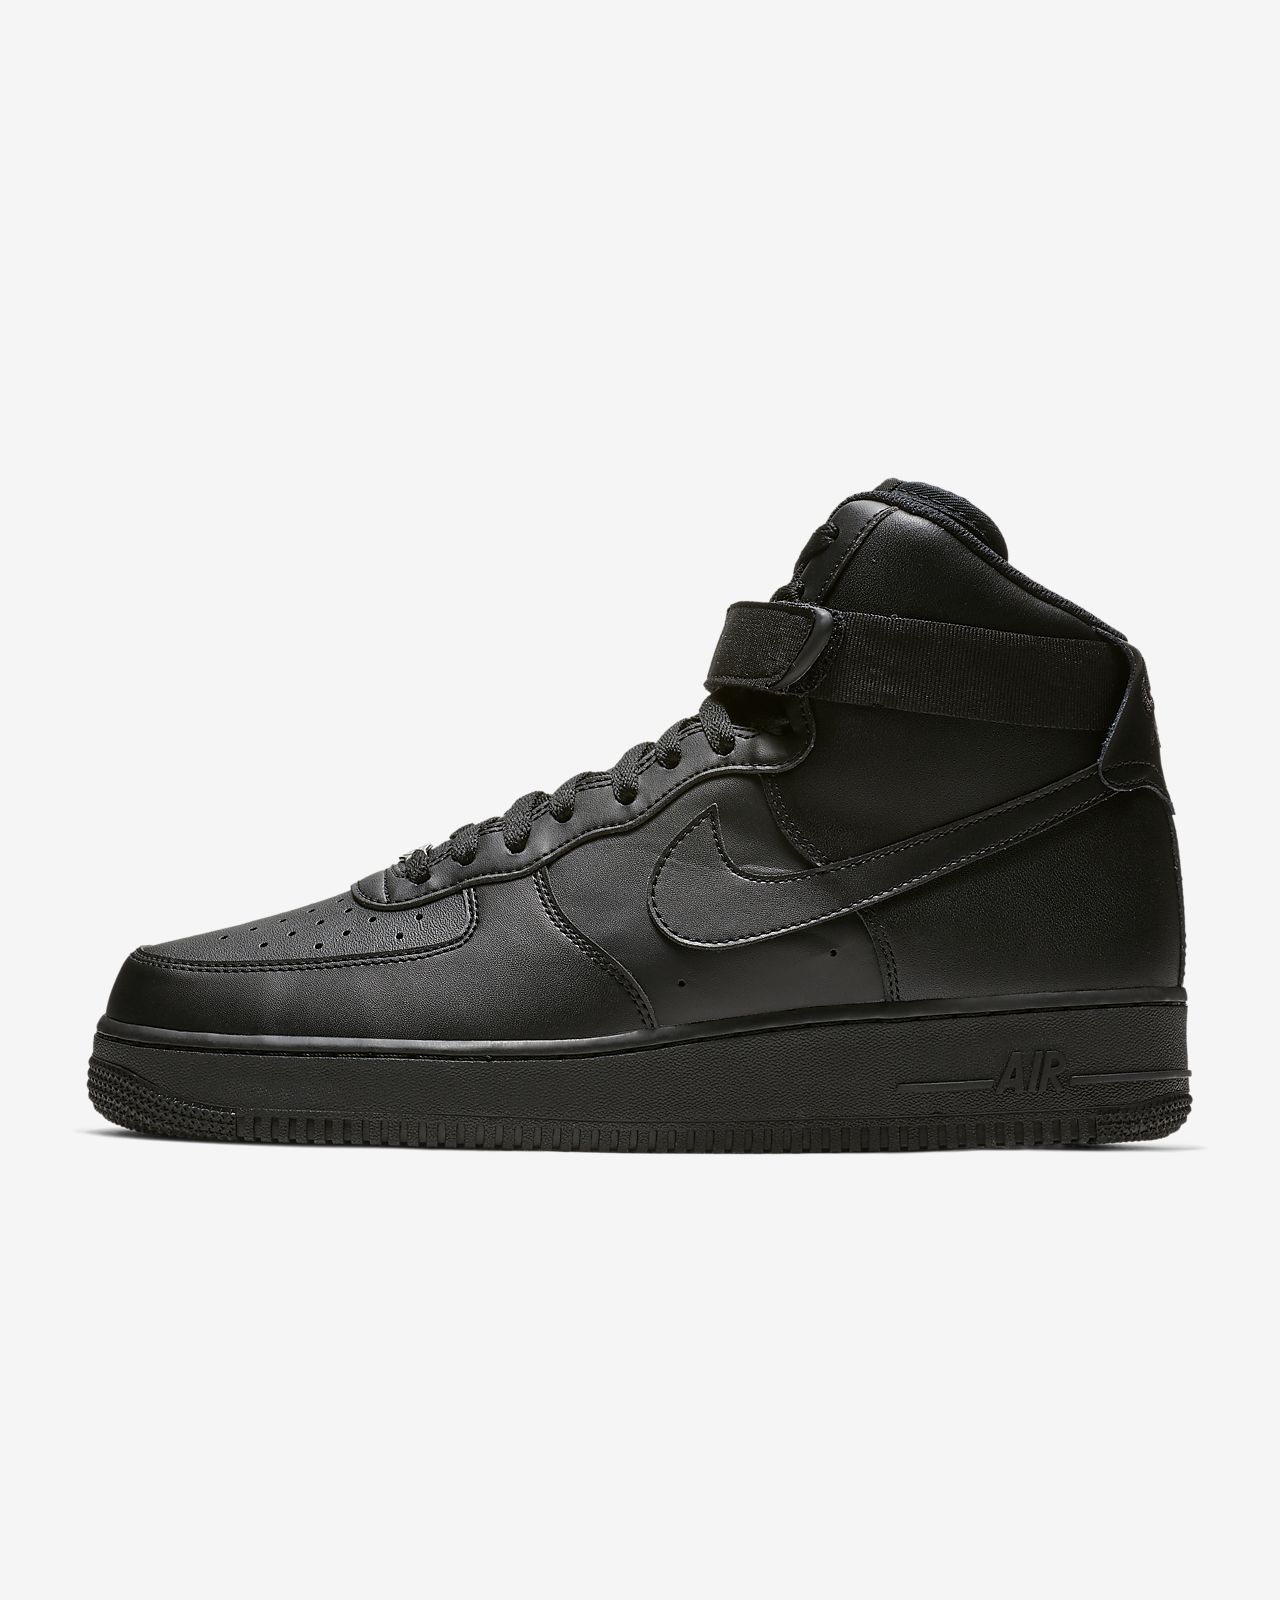 dbe24a5919c9 Nike Air Force 1 High 07 Men s Shoe. Nike.com